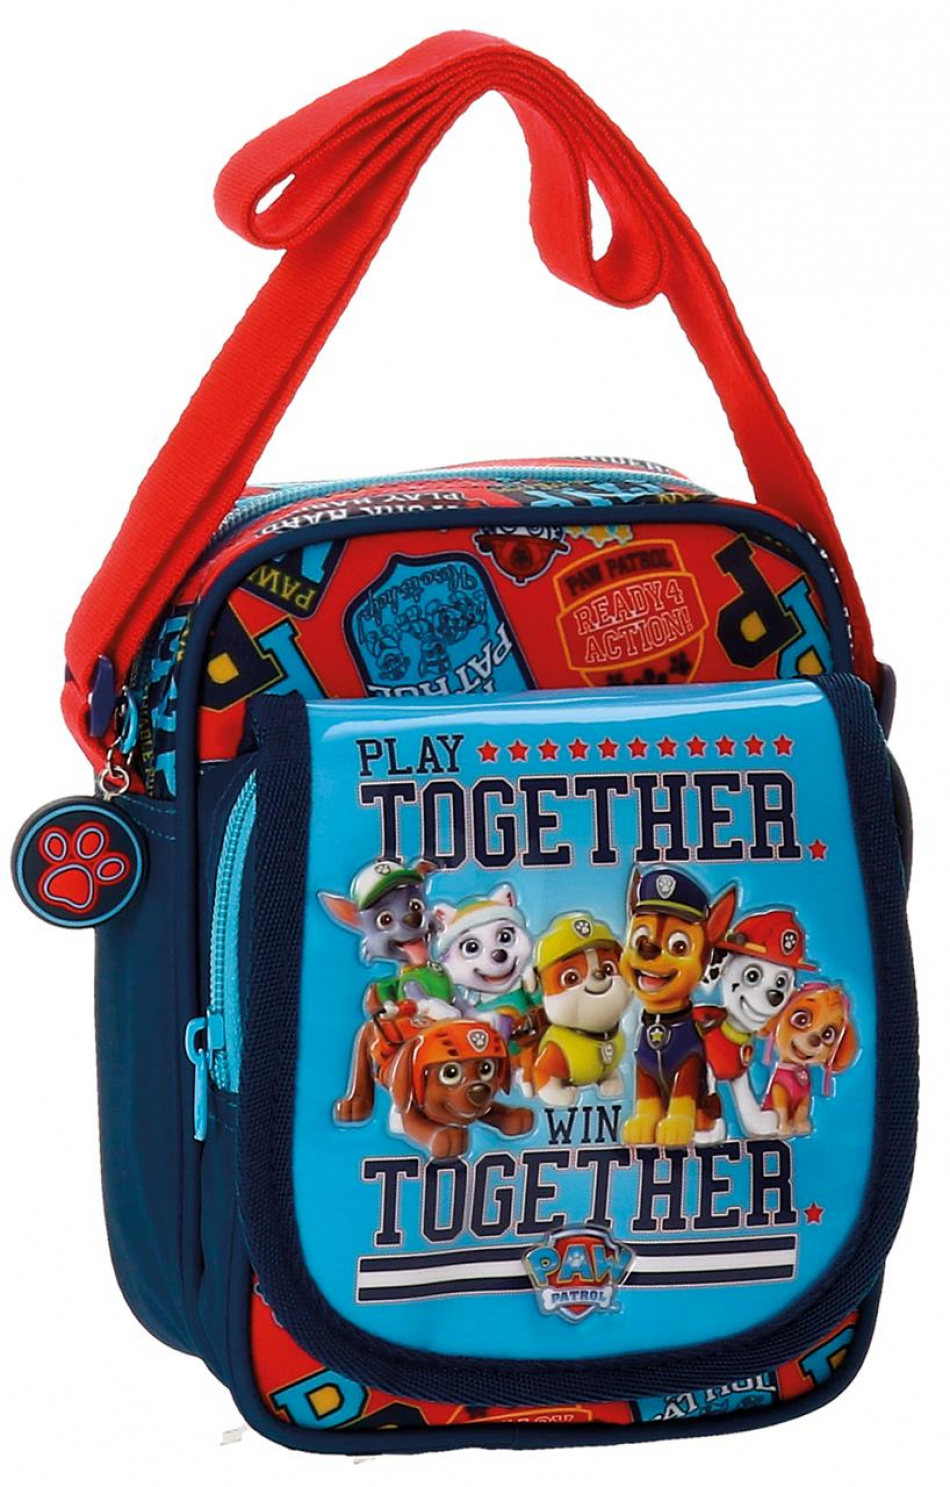 Bandolera La Patrulla Canina Play together